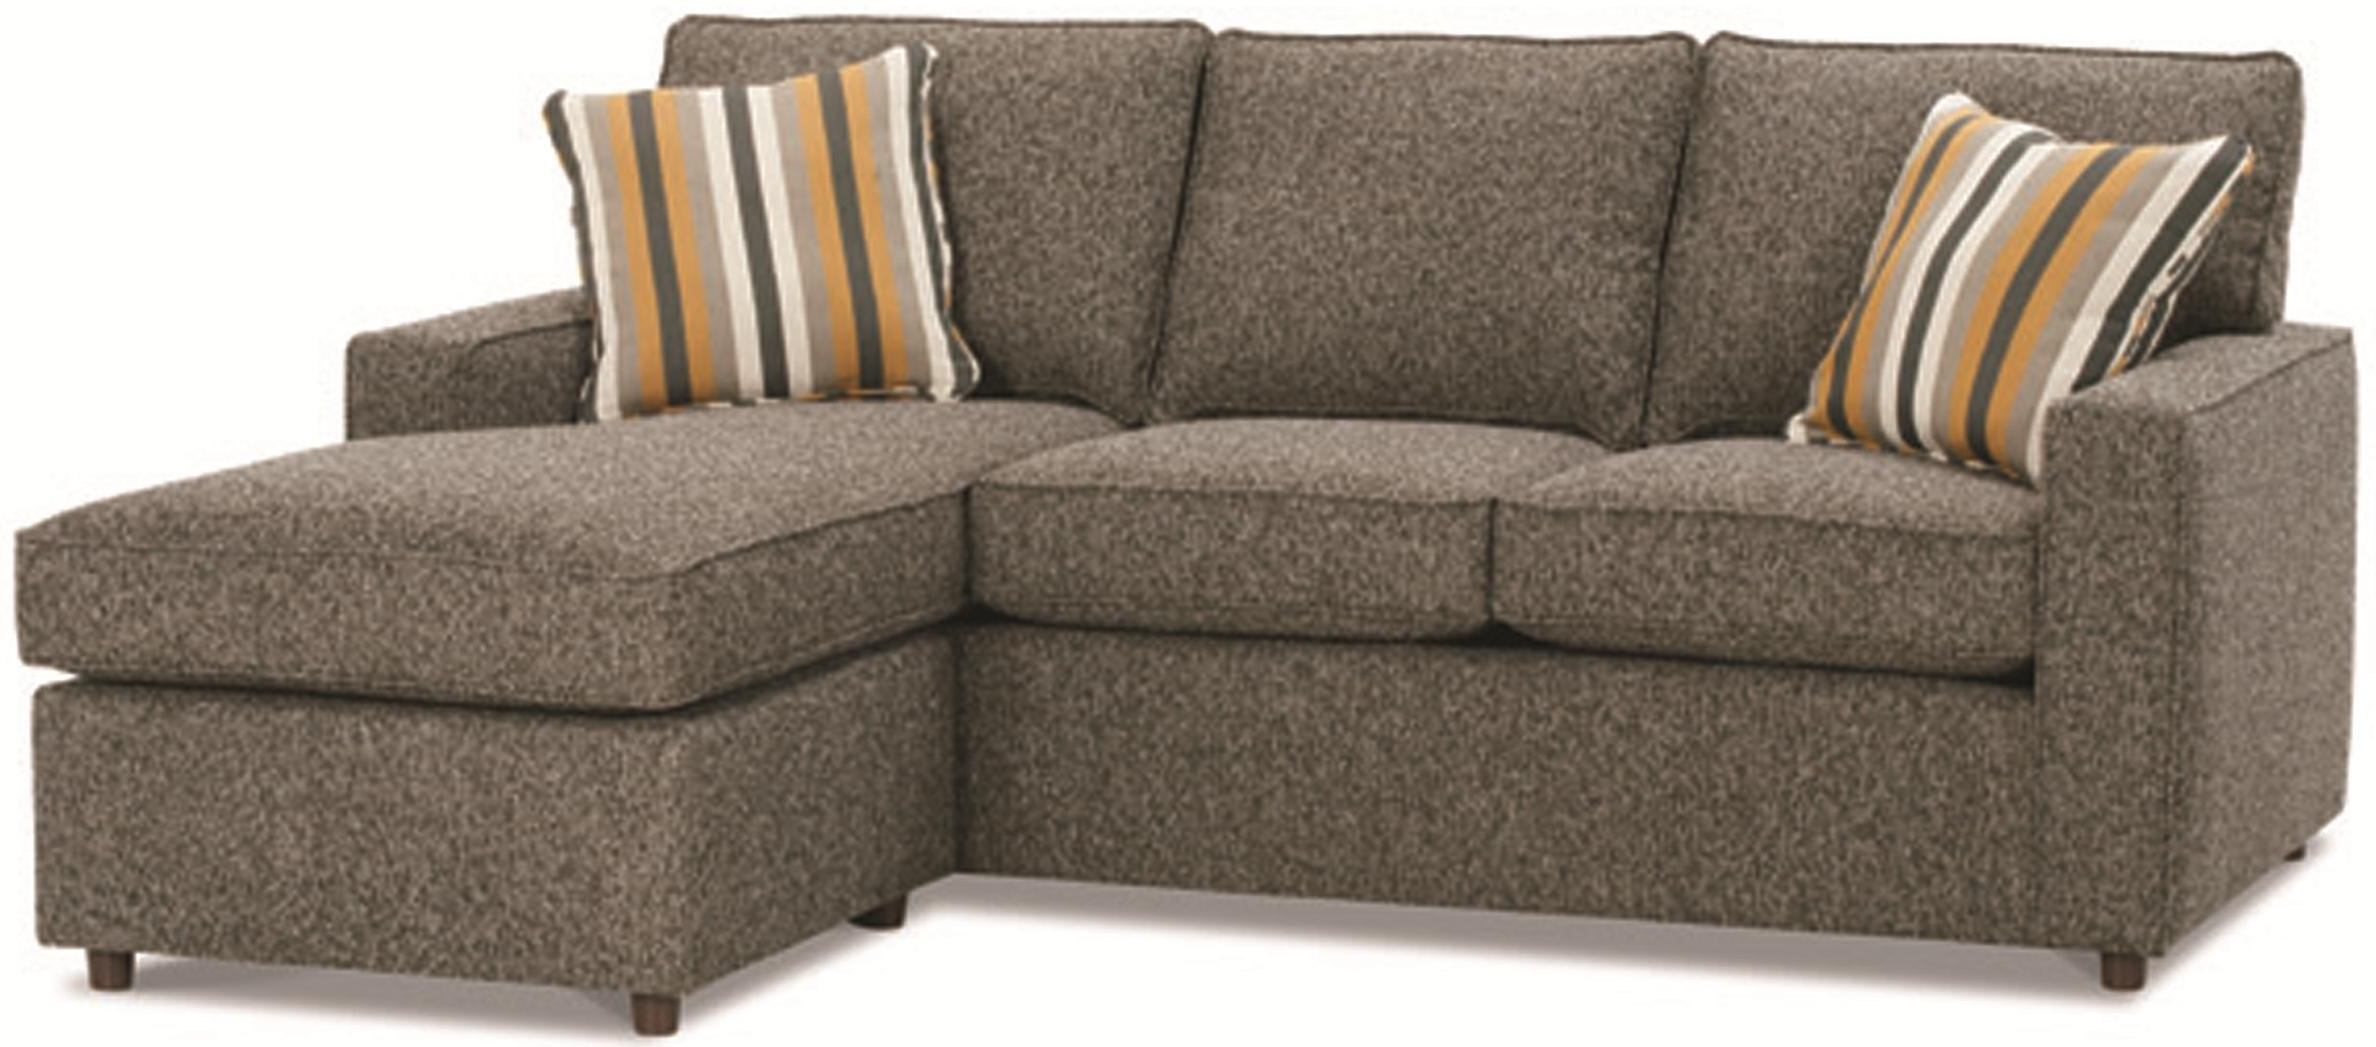 Monaco Contemporary Sofa With Reversible Chaise Ottomanrowe With Regard To Fashionable Minneapolis Sectional Sofas (View 9 of 15)